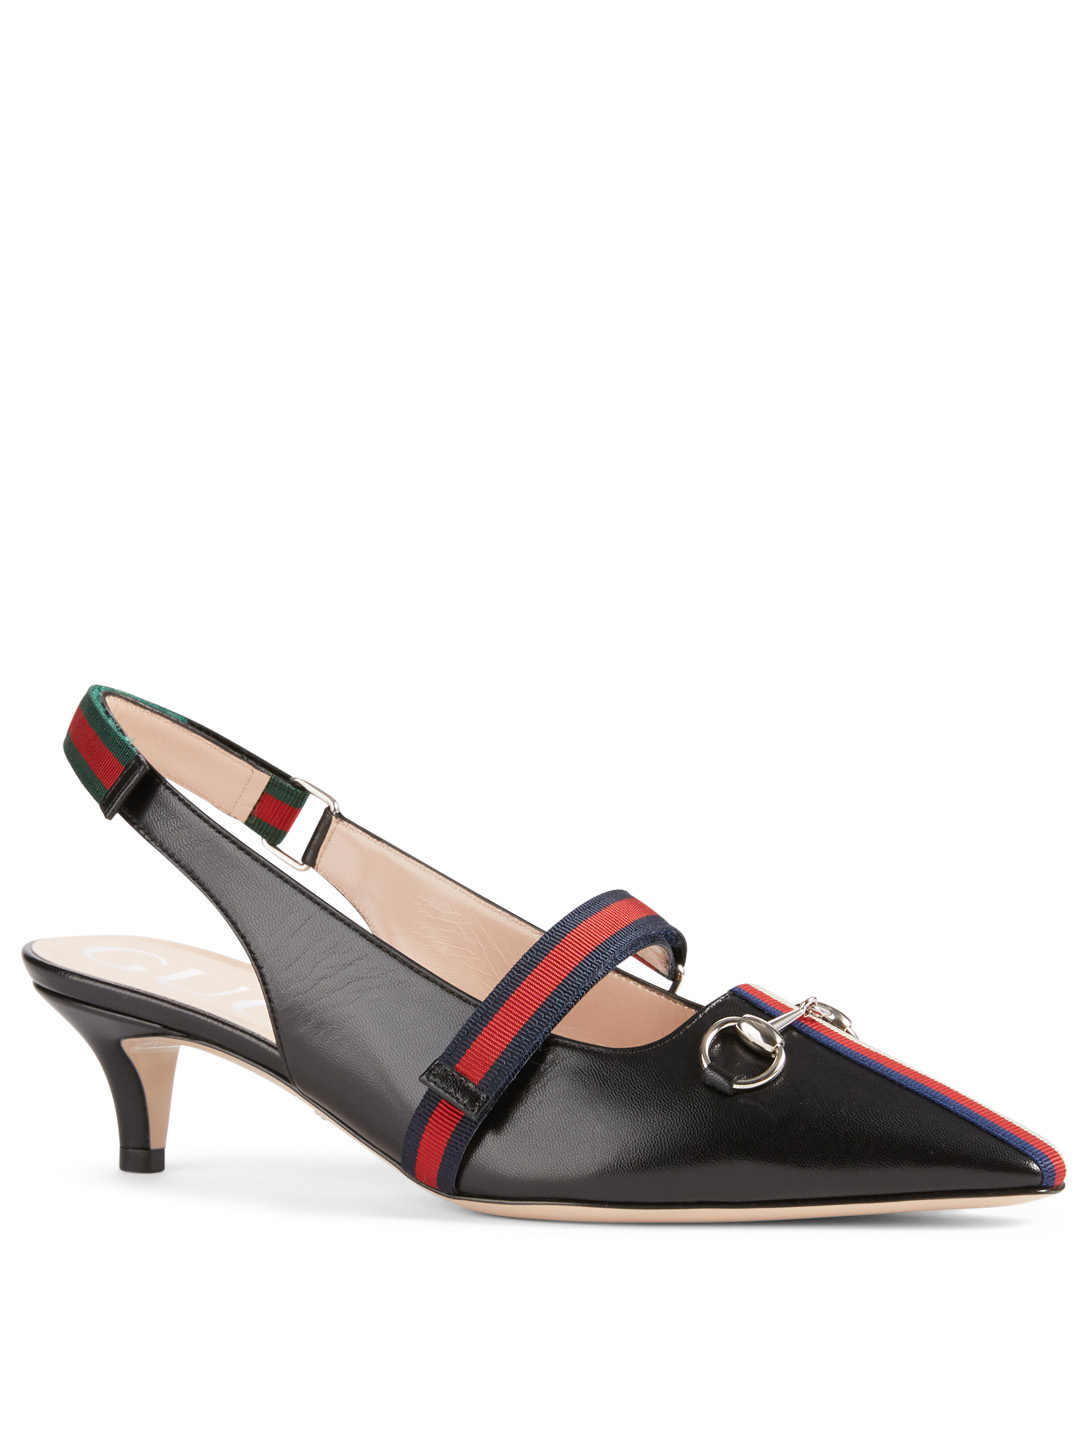 GUCCI Leather Slingback Pump With Web Designers Black